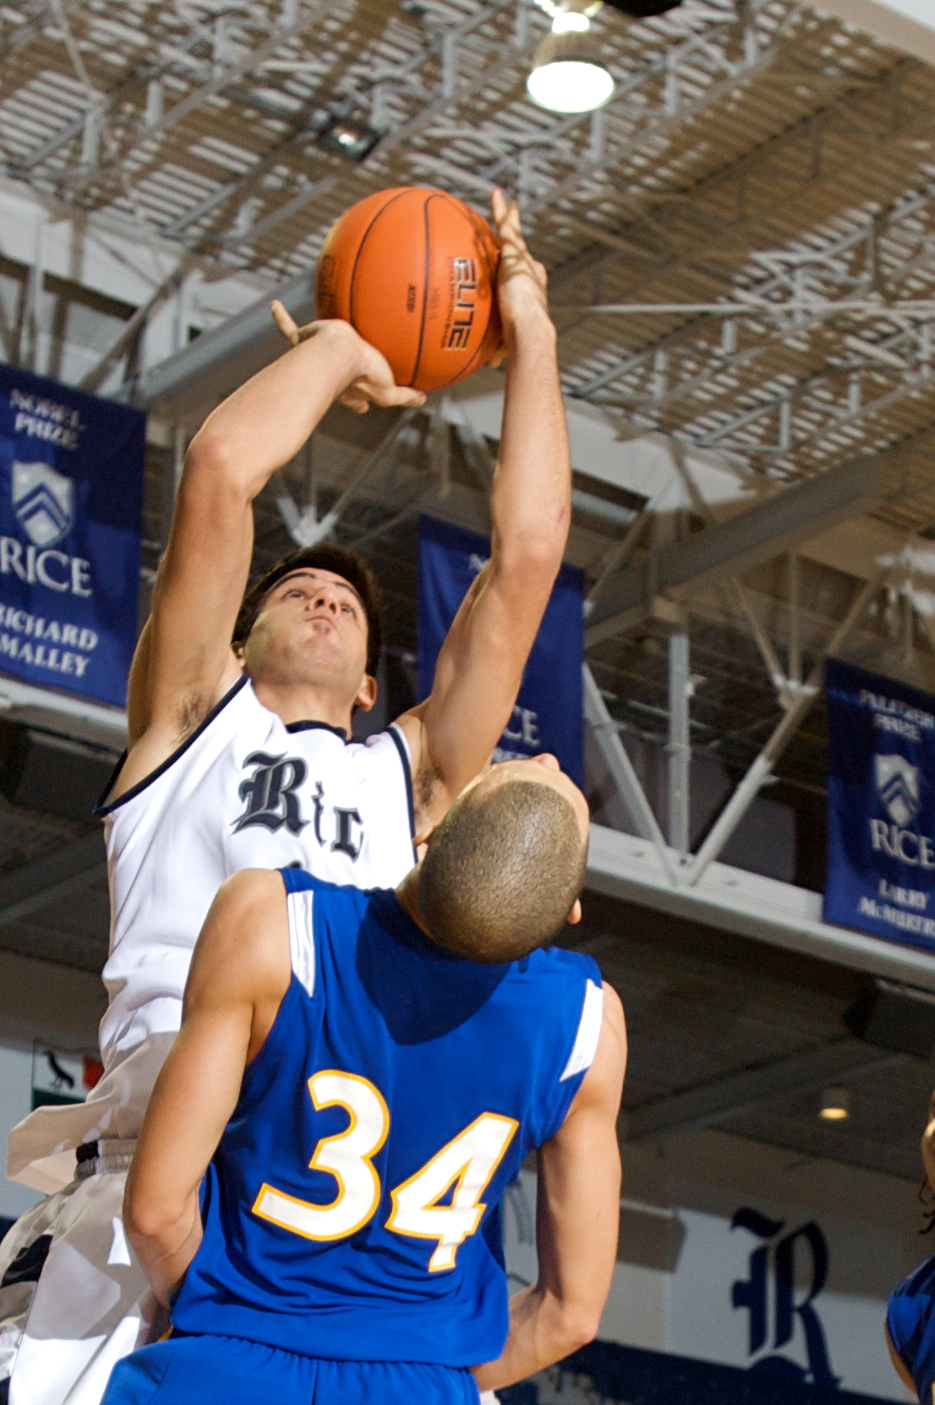 Rice freshman Arsalan Kazemi scored a team-high 14 points in the Owls' 70-58 loss at TCU Saturday.